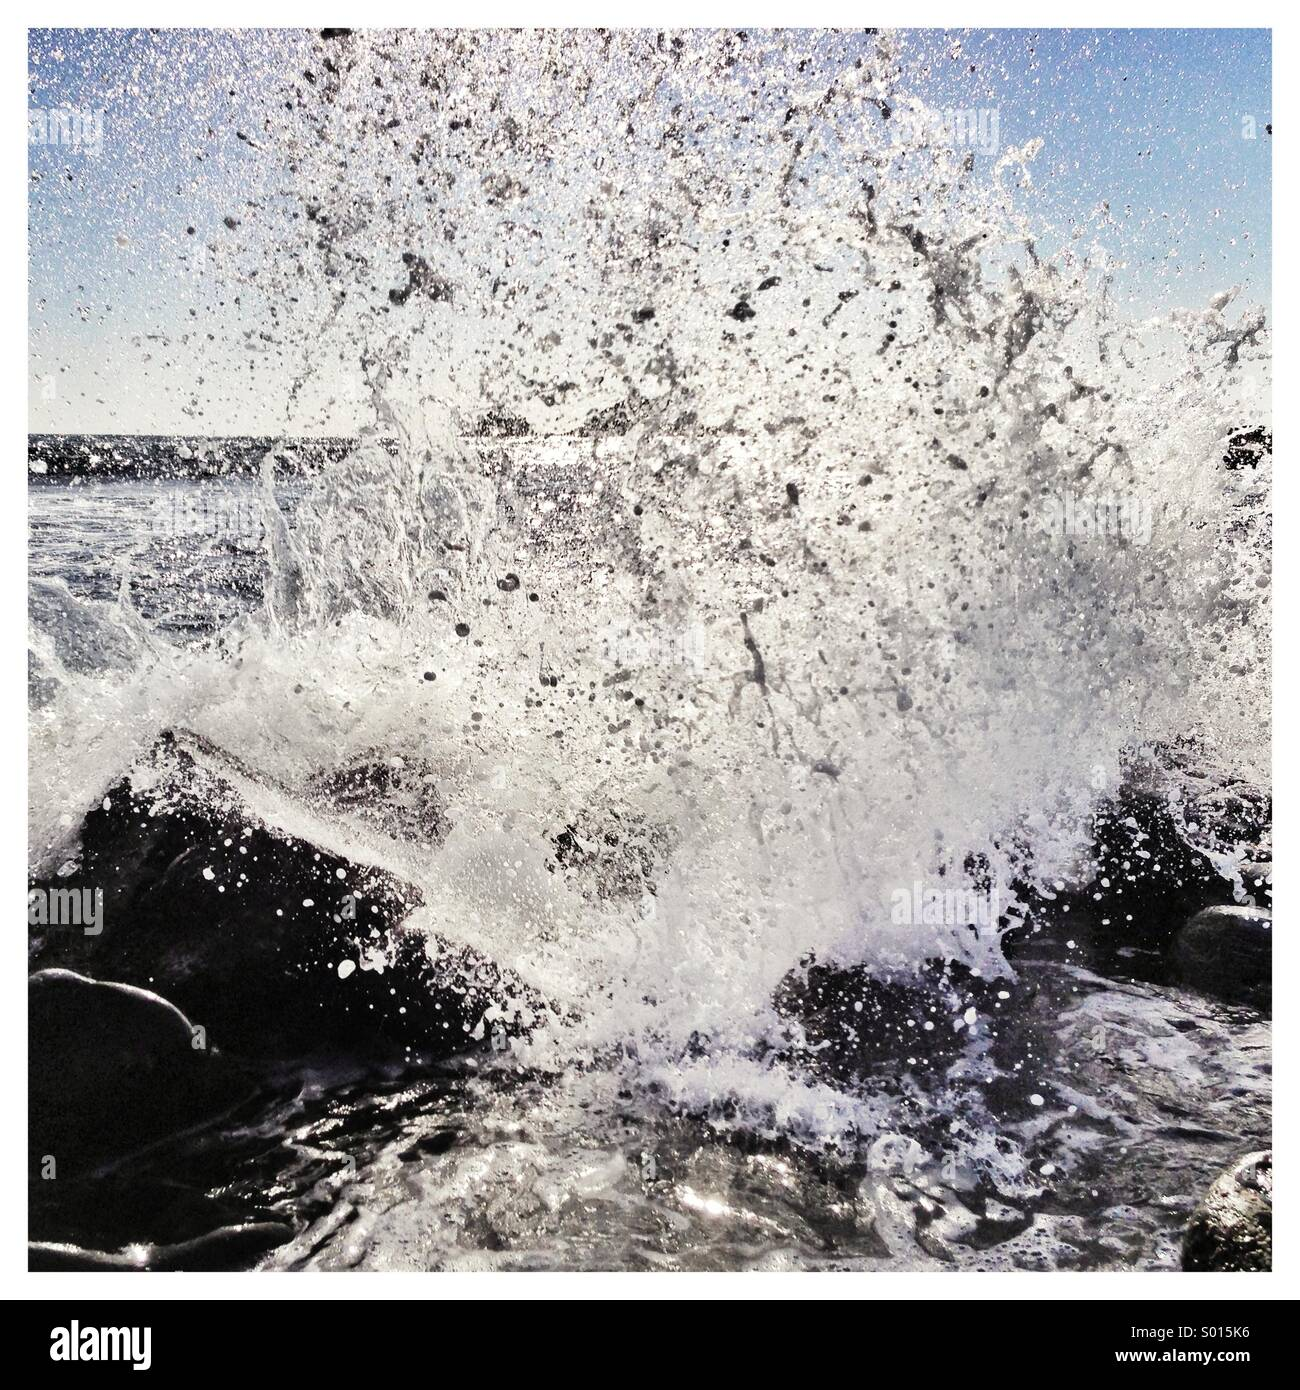 Sea crashing on rocks close up - Stock Image